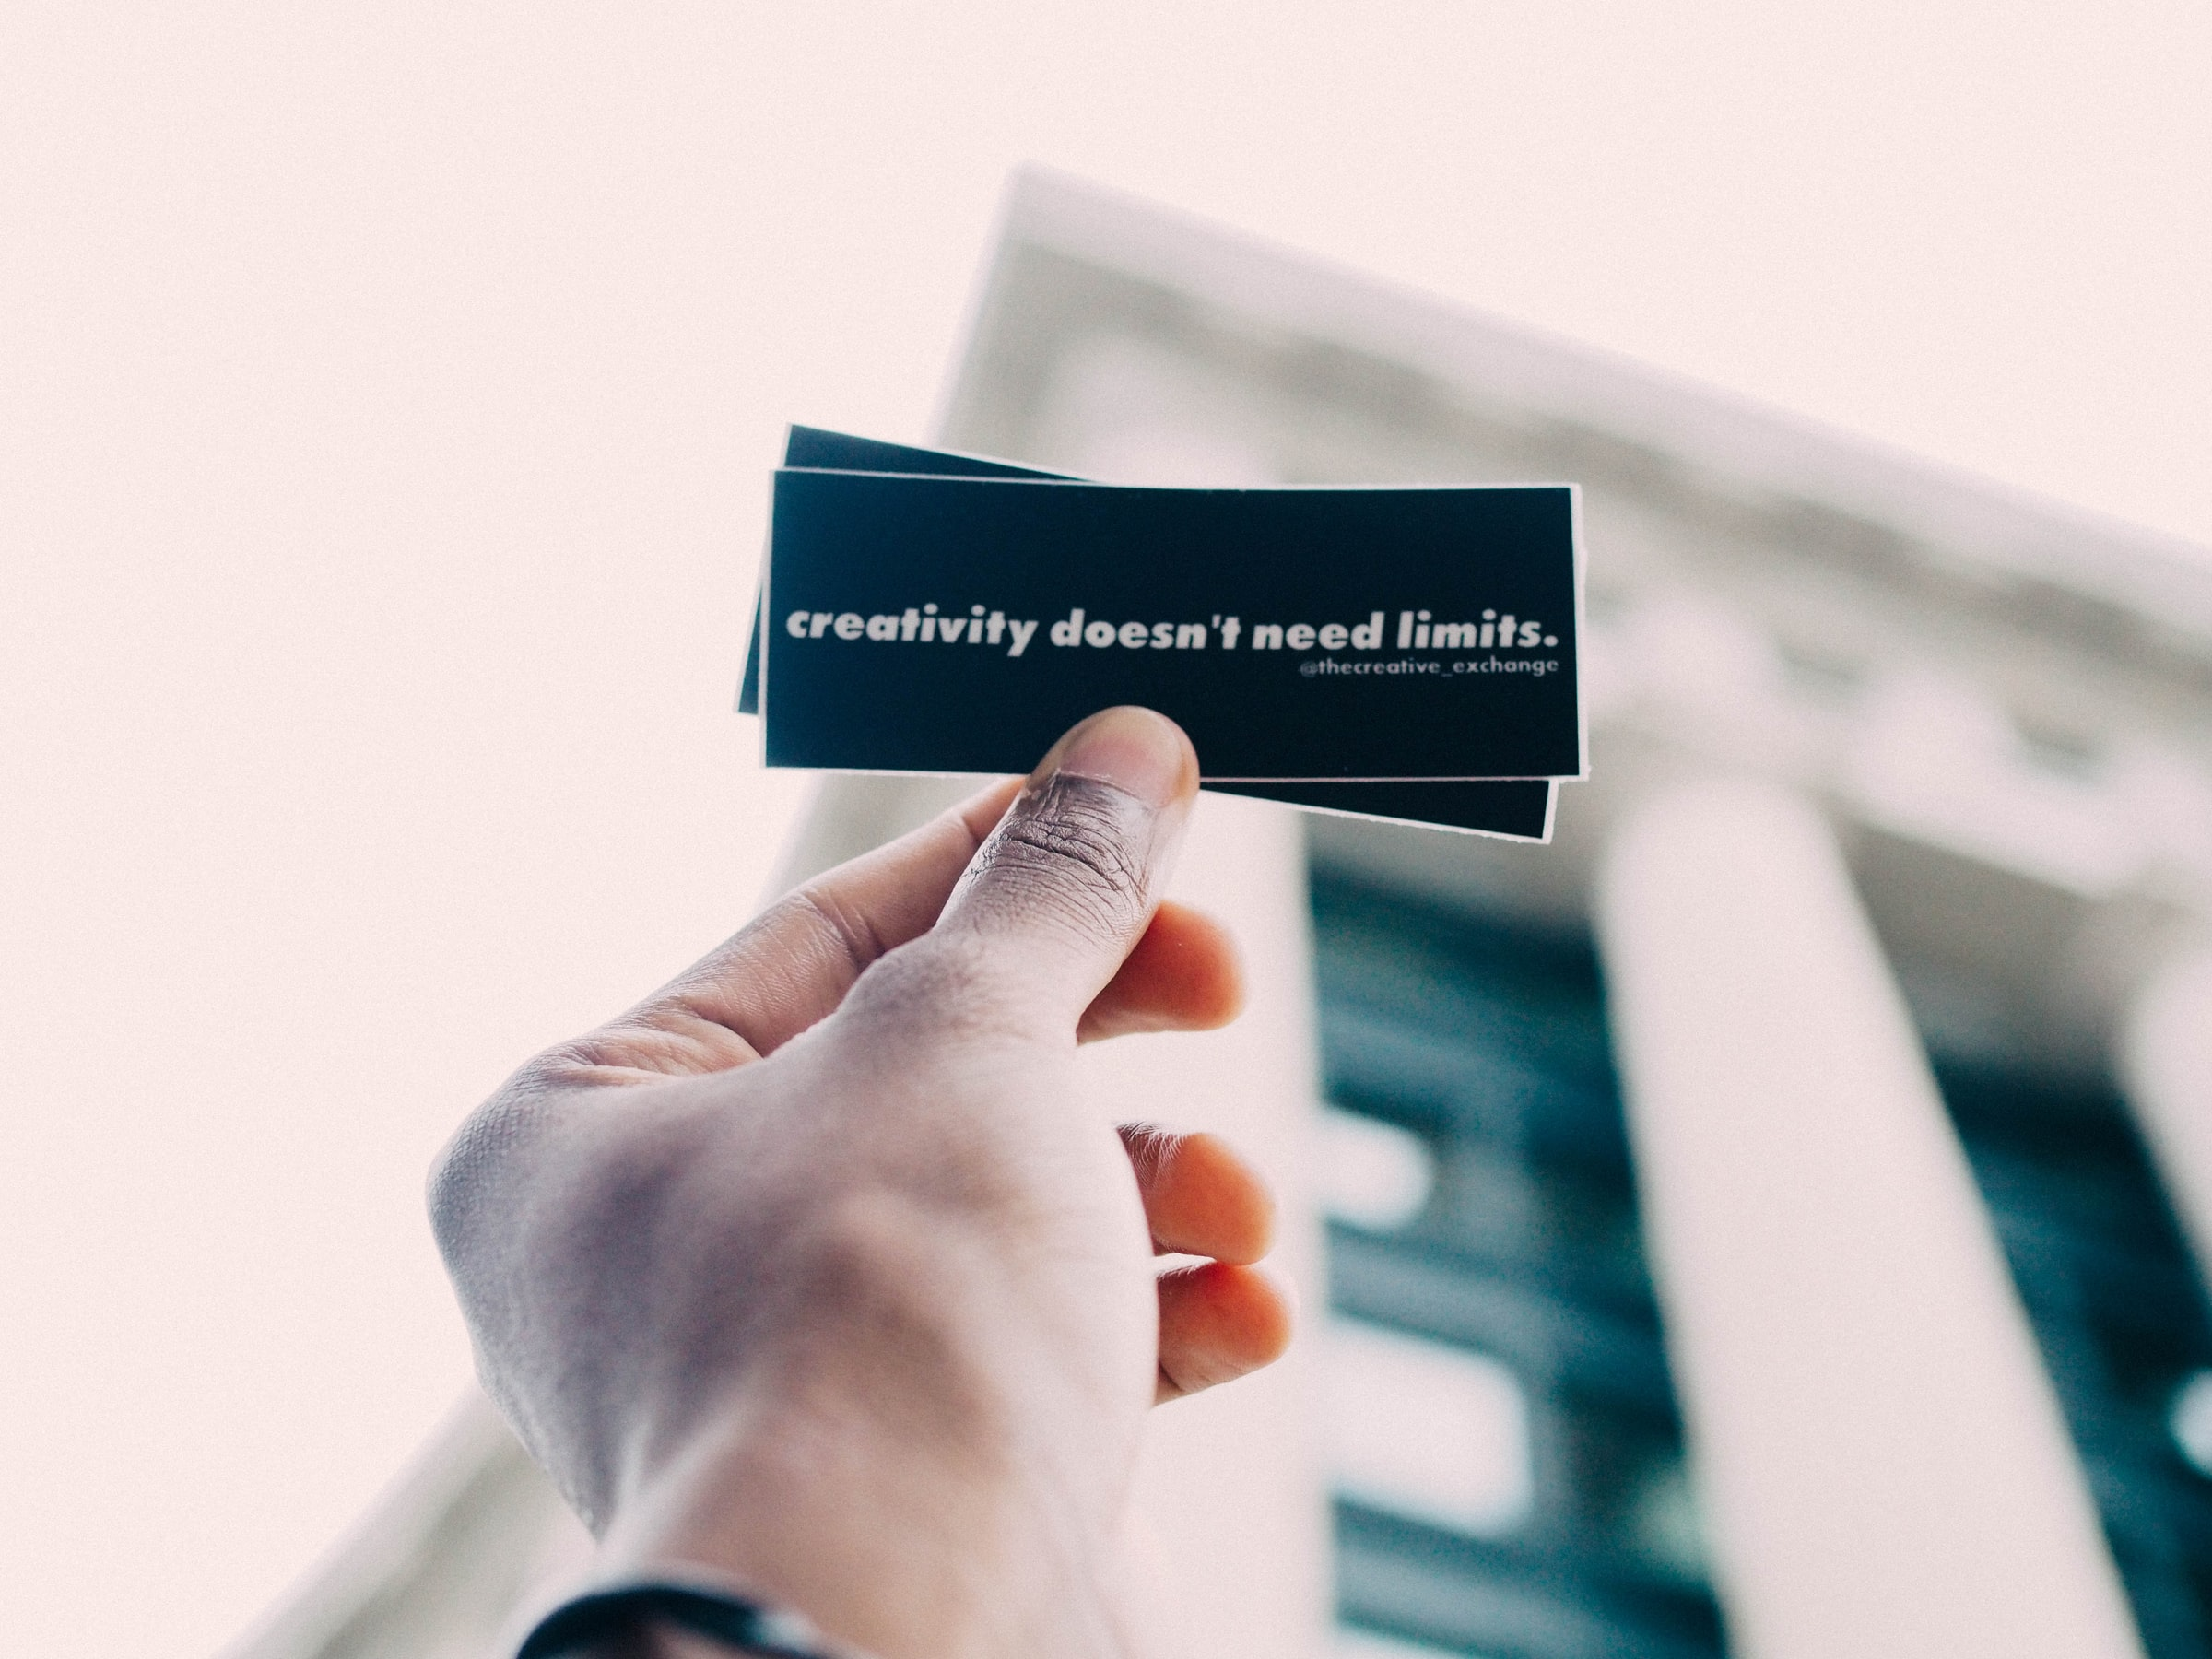 """A note with a phrase on it: """"creativity doesn't need limits""""."""